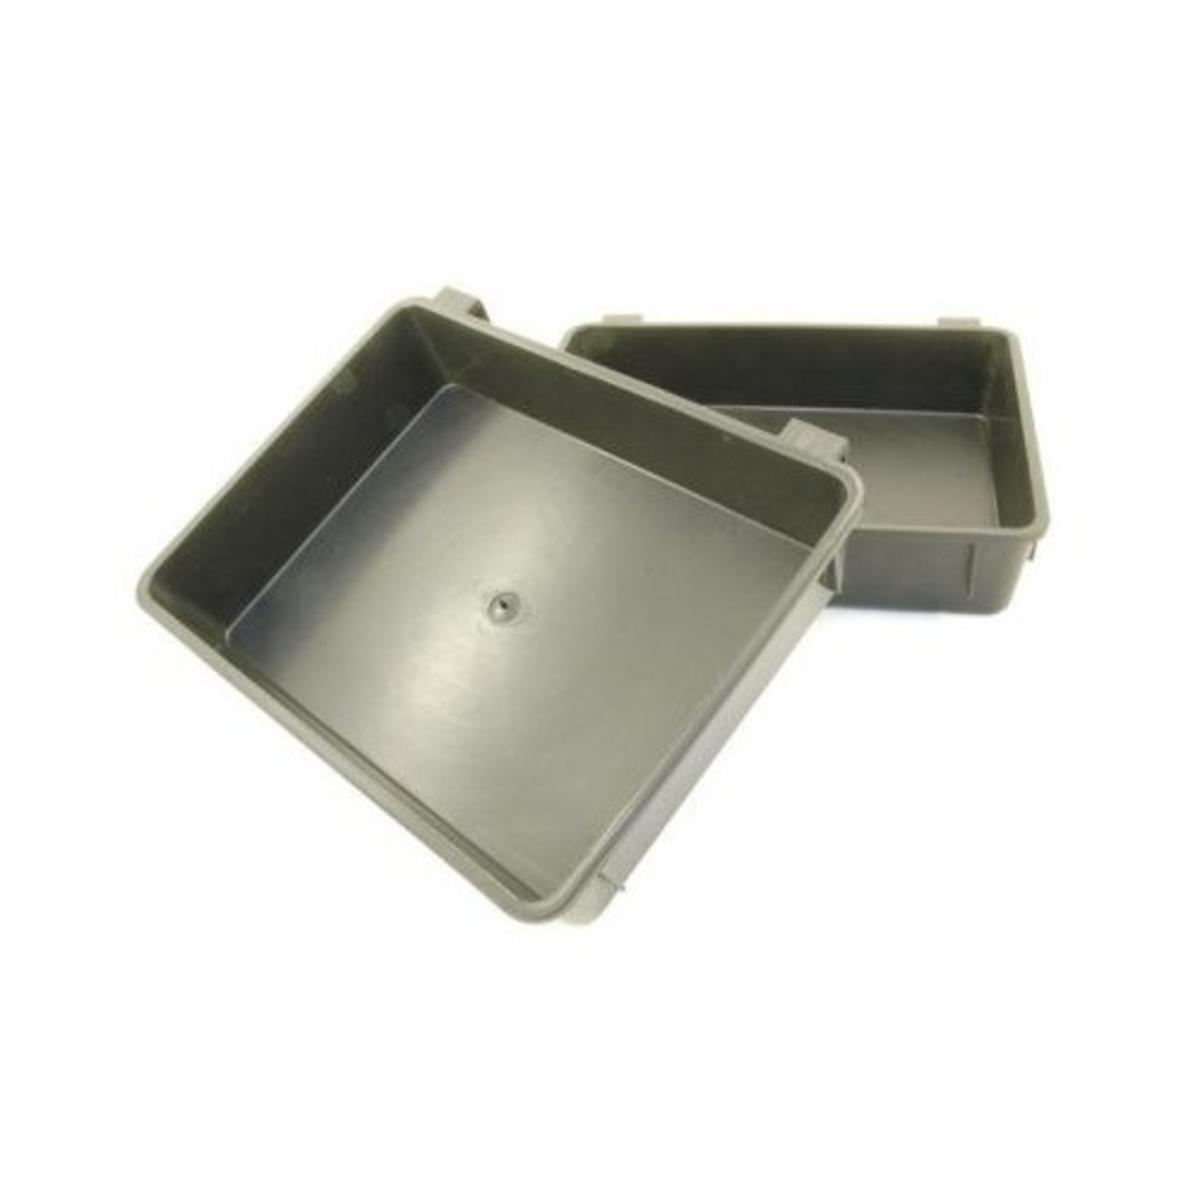 DAIWA TEAM DAIWA SEAT BOX SIDE TRAY Model No TDST1